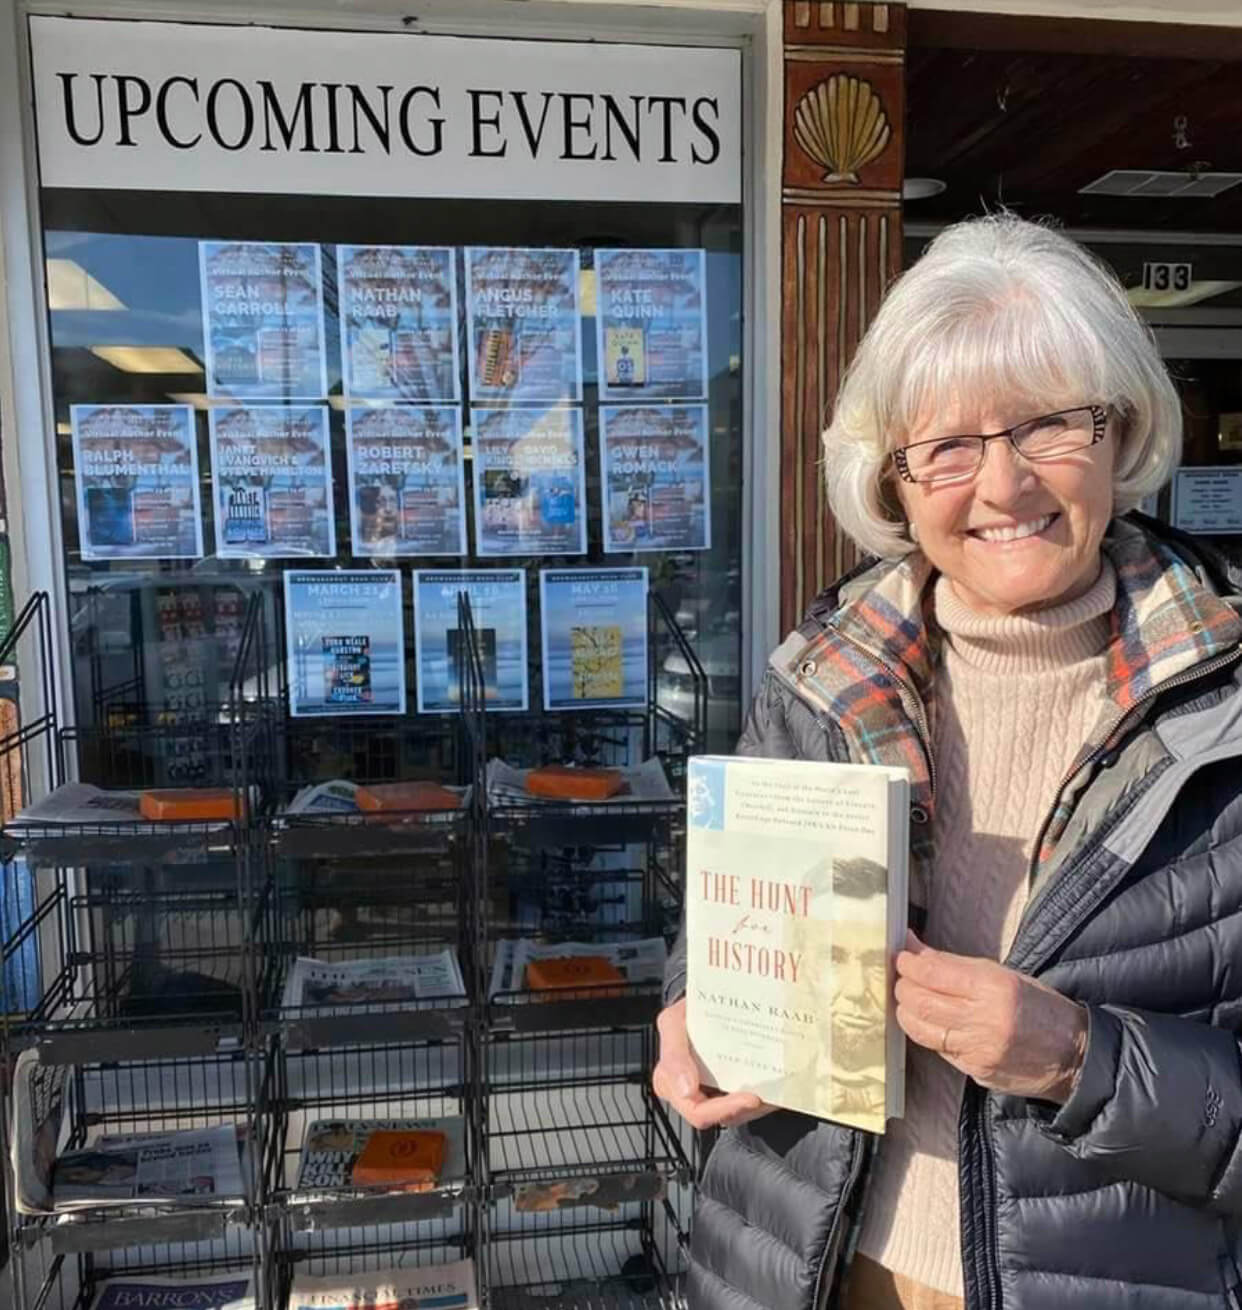 Ilona with the book The Hunt for History